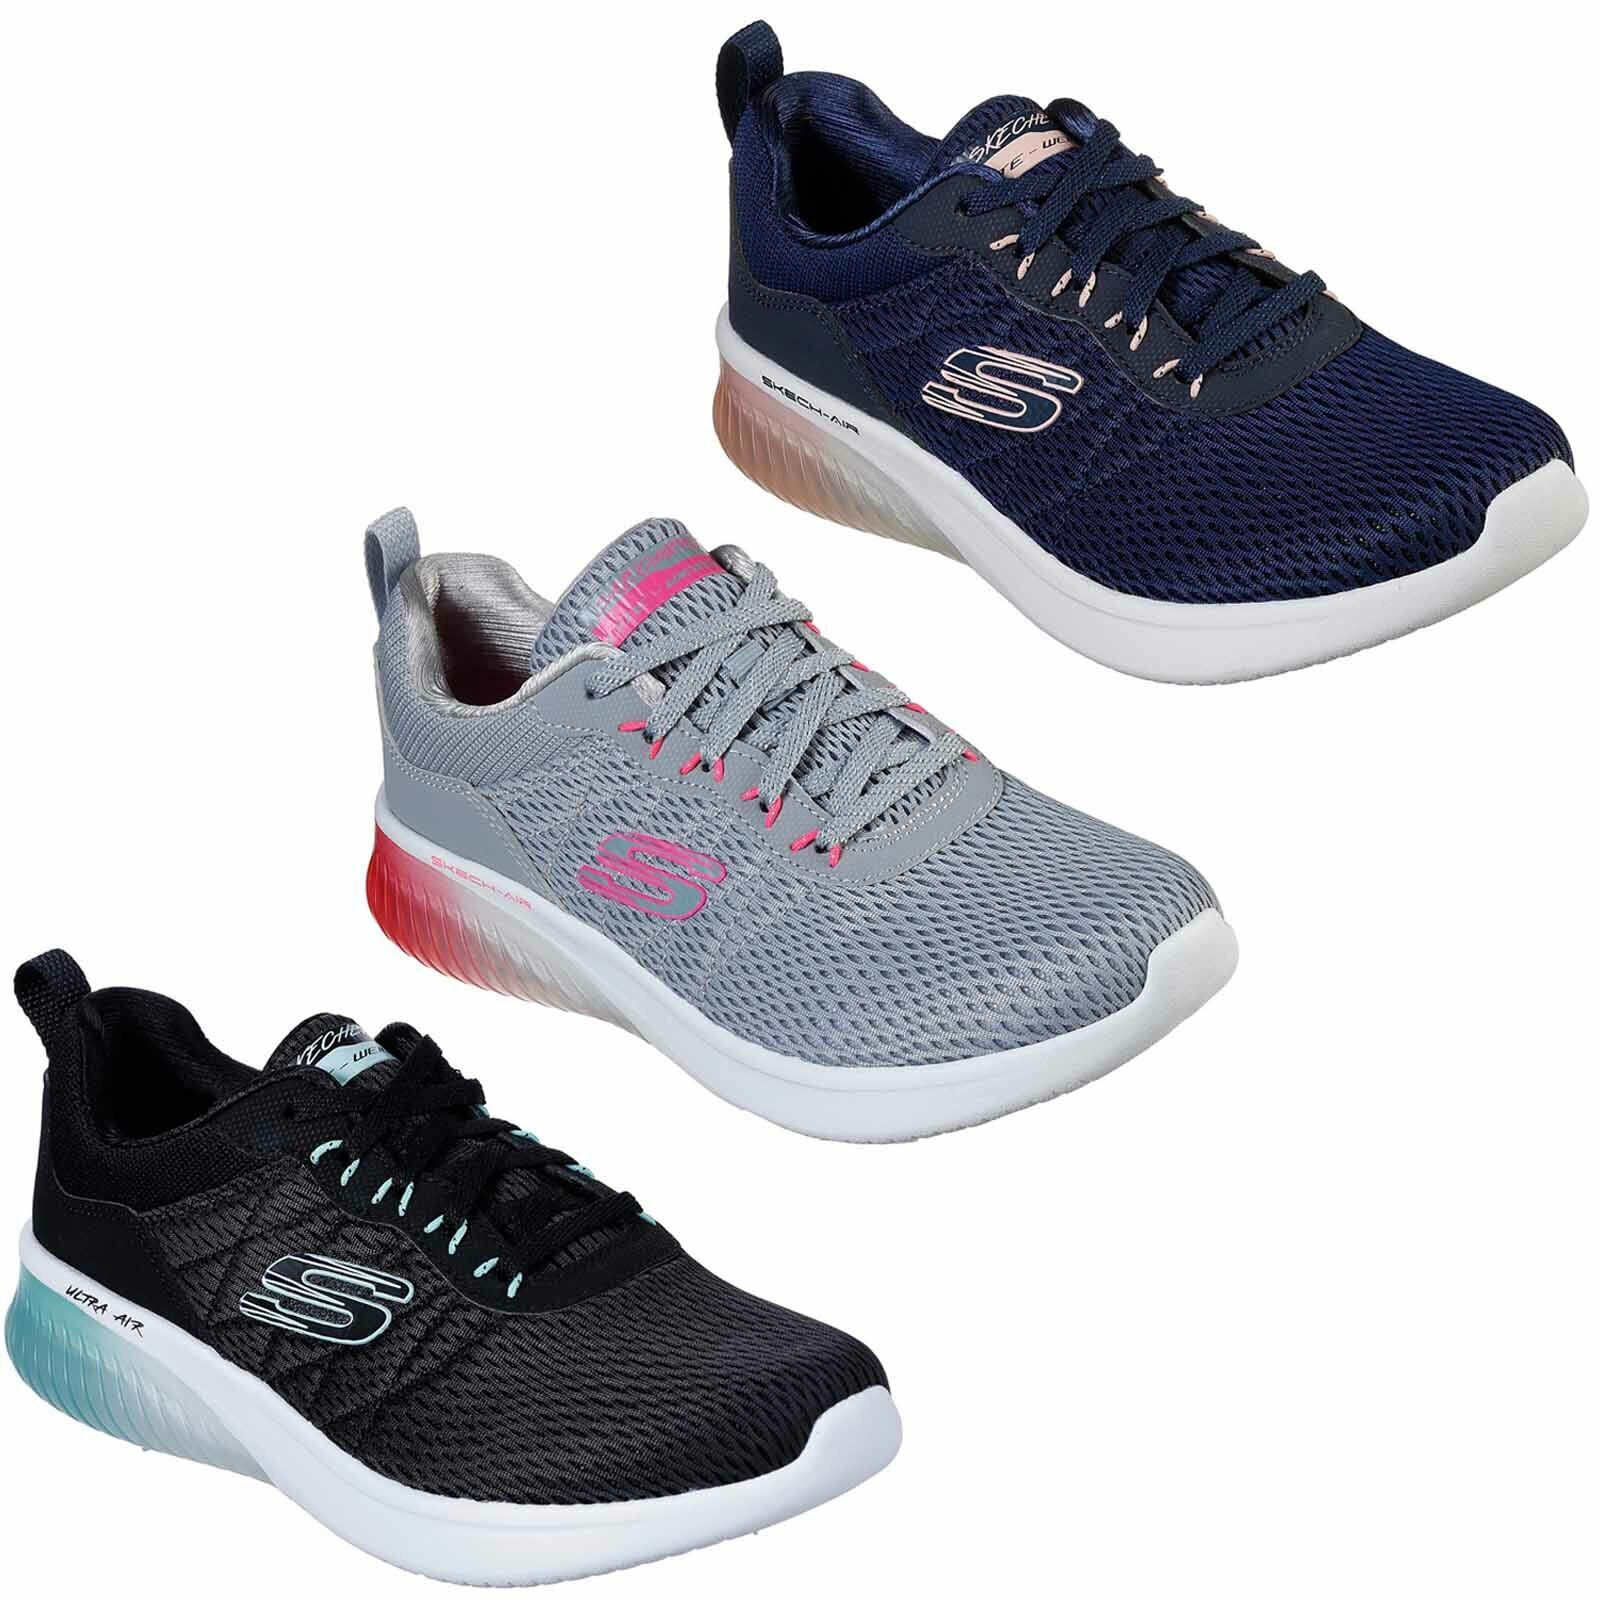 Skechers Skech-Air Ultra Flex Trainers damen Cushioned Sporty Mesh schuhe 13290